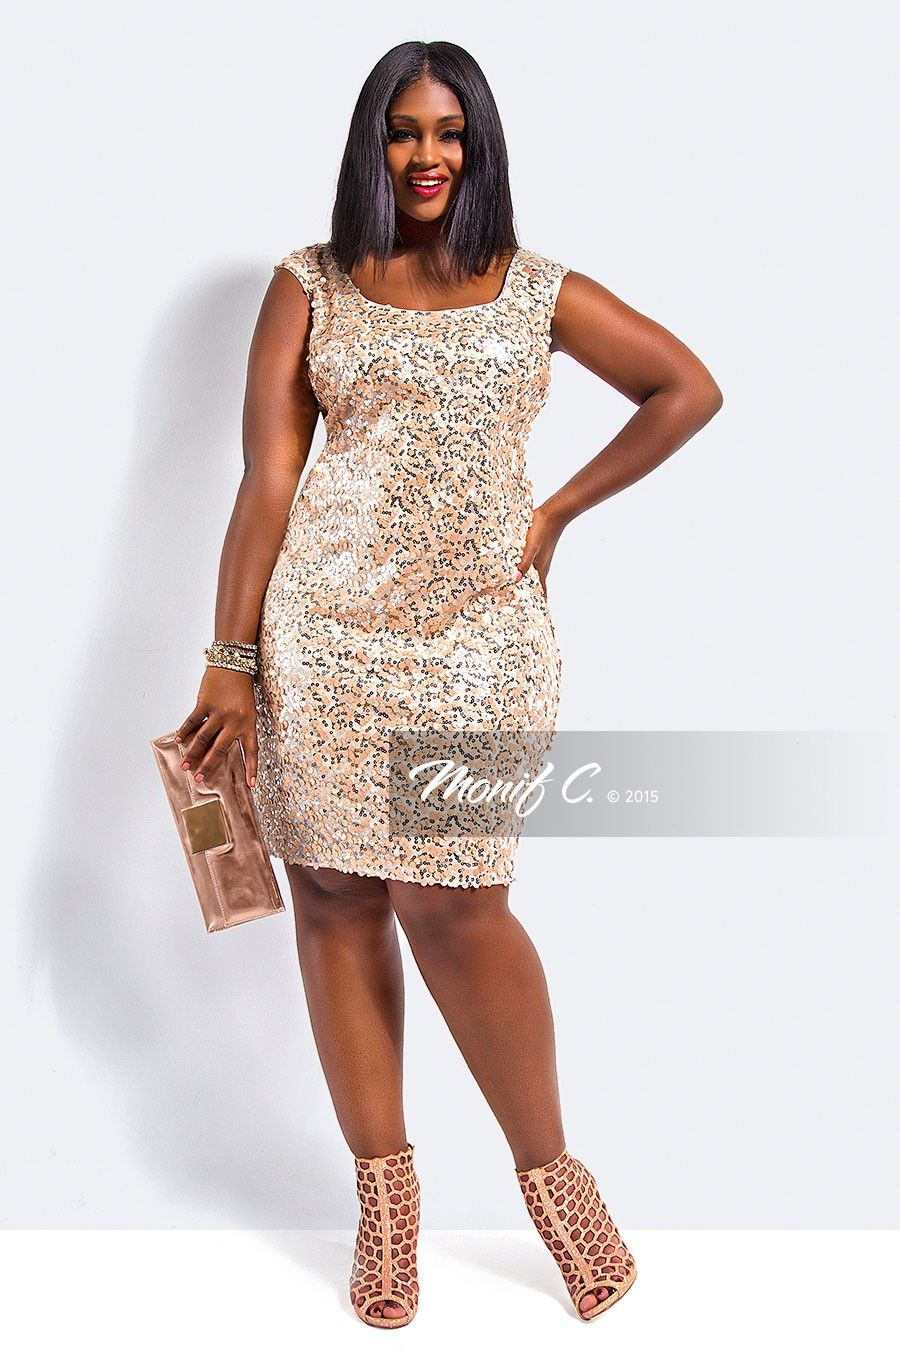 plus size sequin dress - monif c plus size clothing | plus size